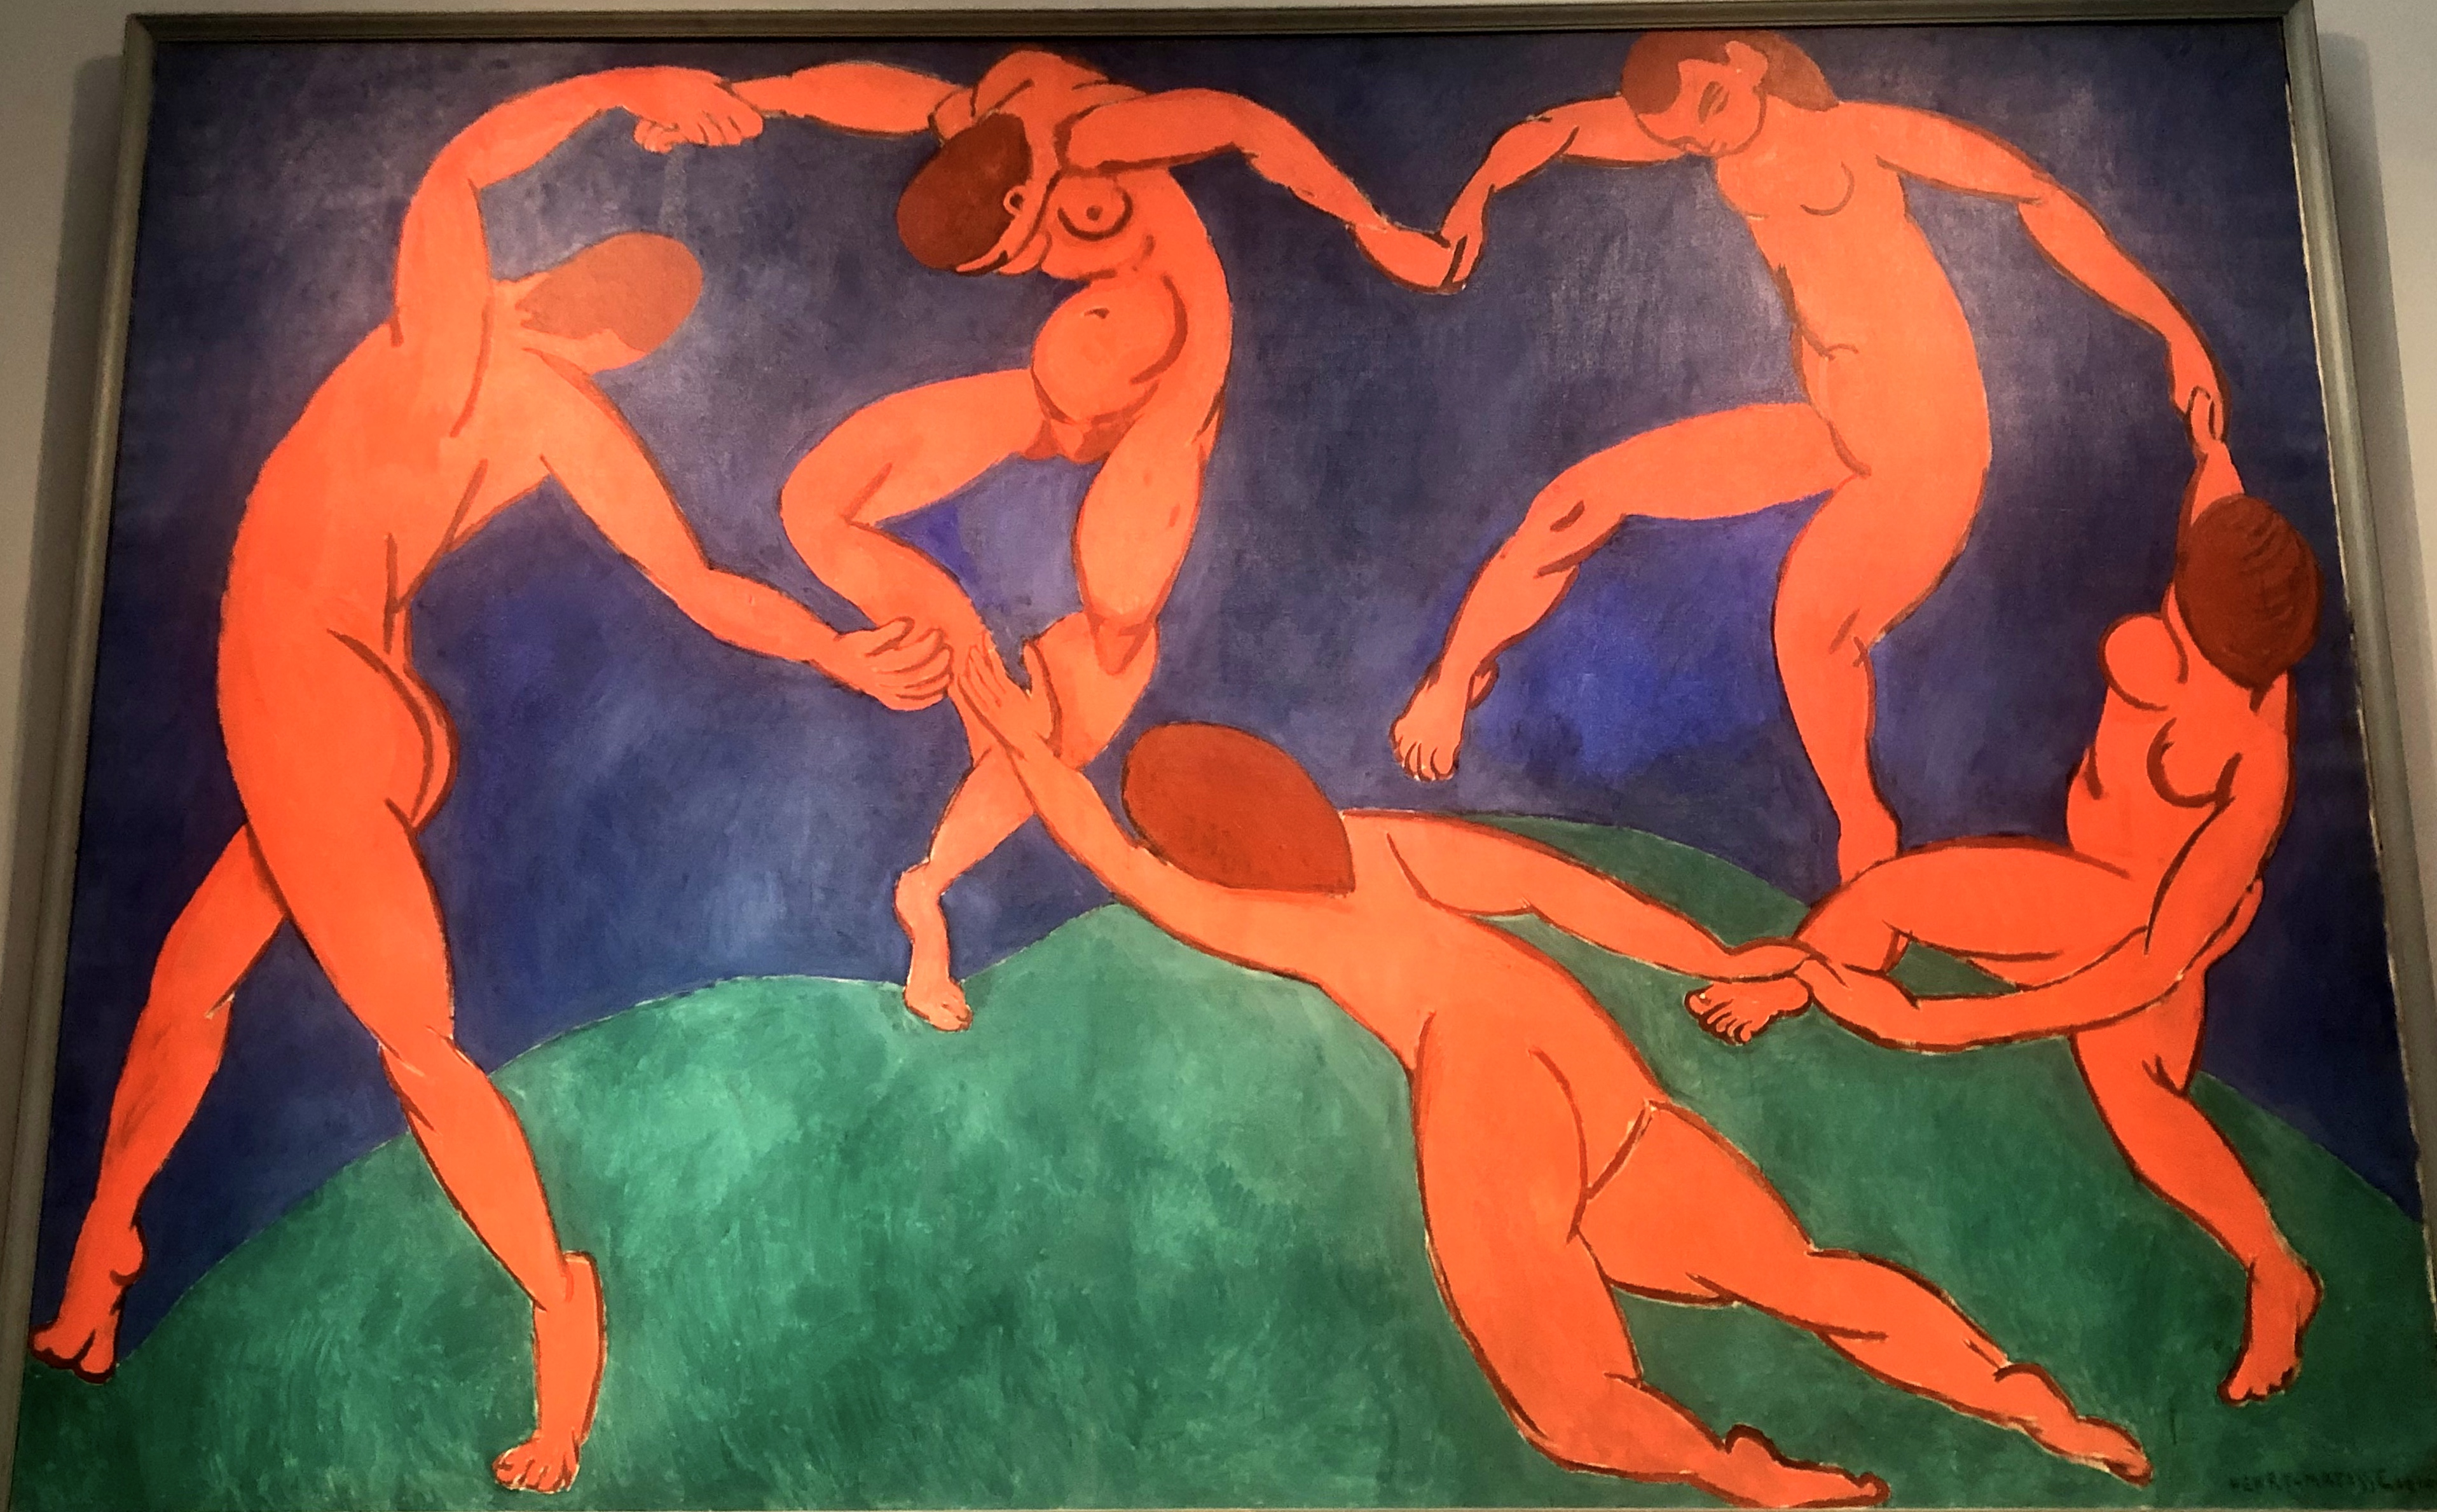 Matisse, The Dance, Shchukin's collection